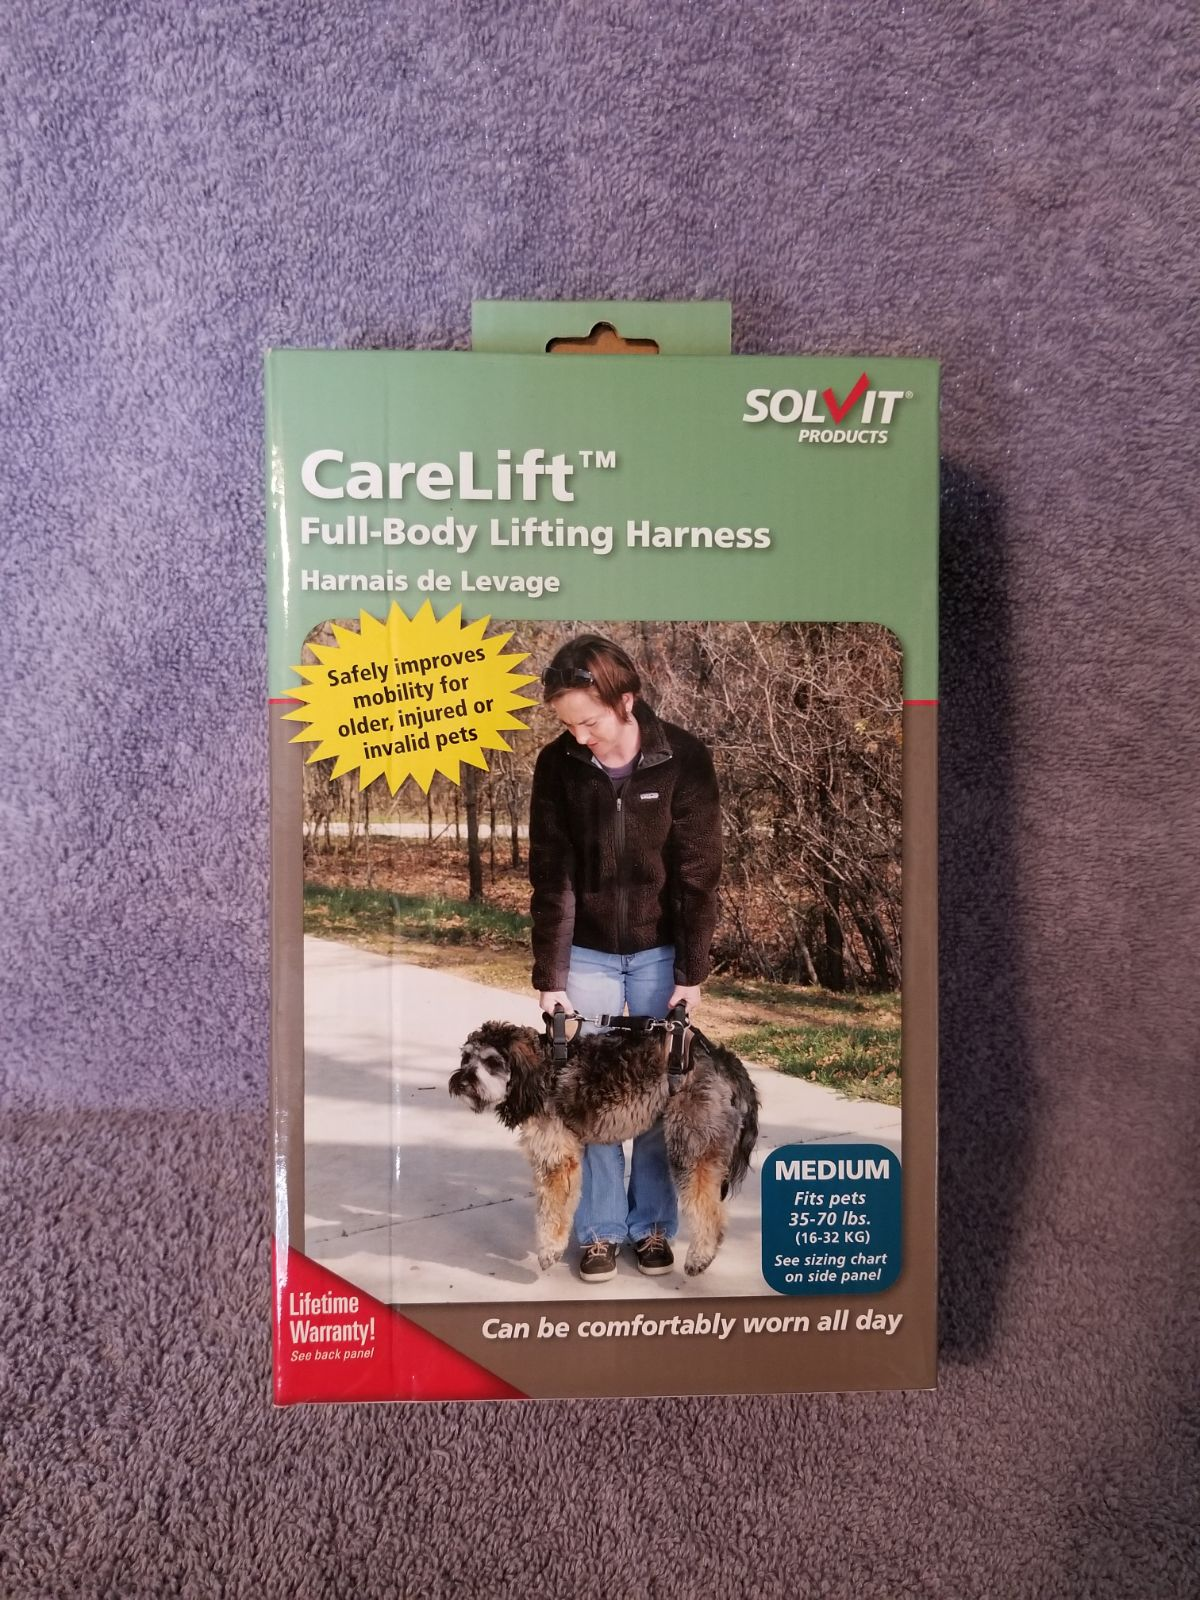 CareLift Full-Body Lifting Harness